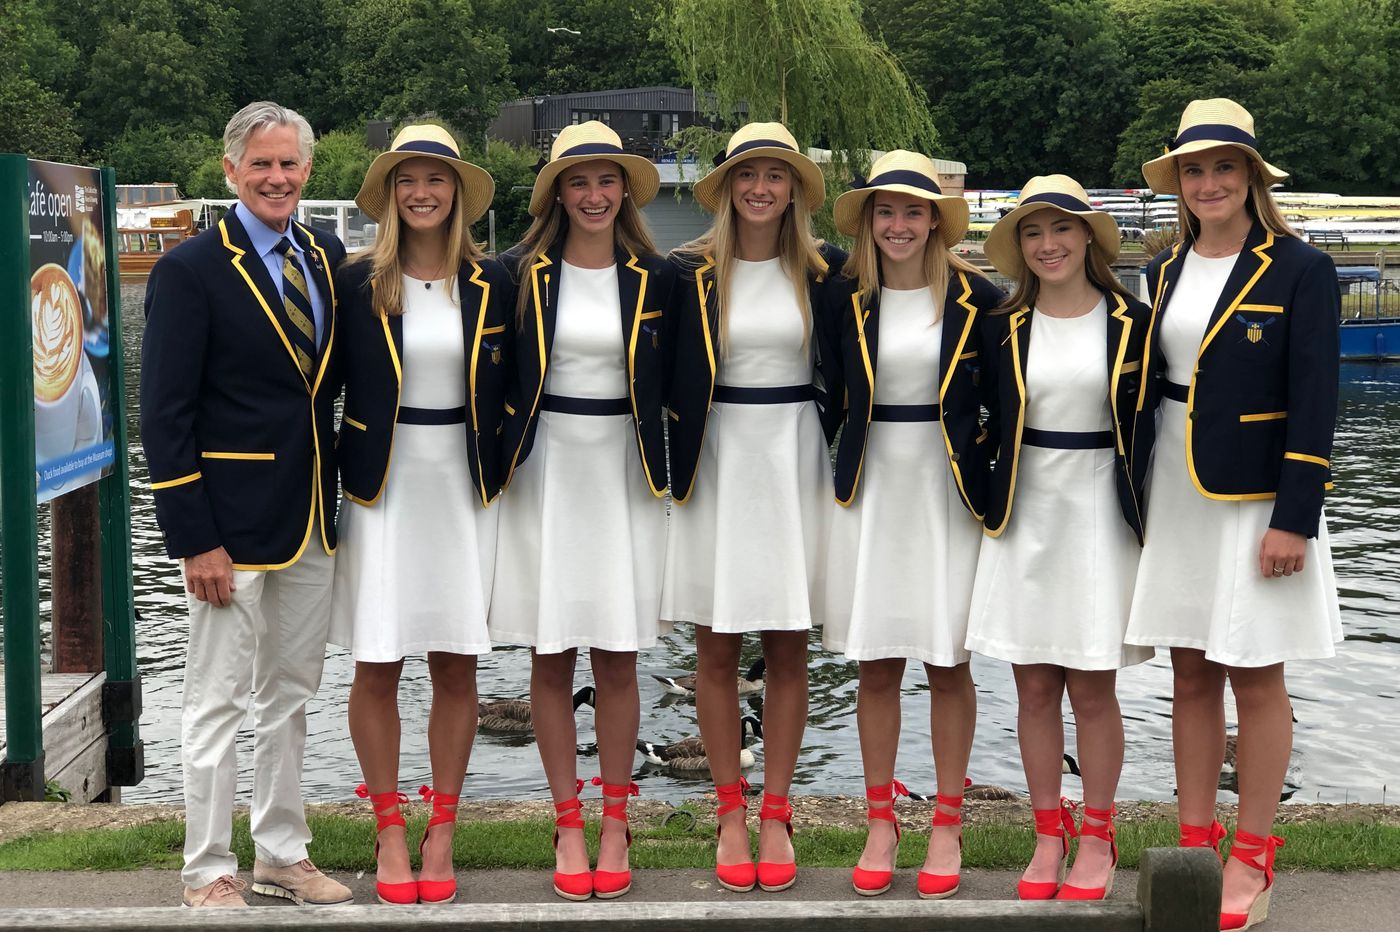 For Merion Mercy boat, a dominant season ends at Henley Women's Regatta